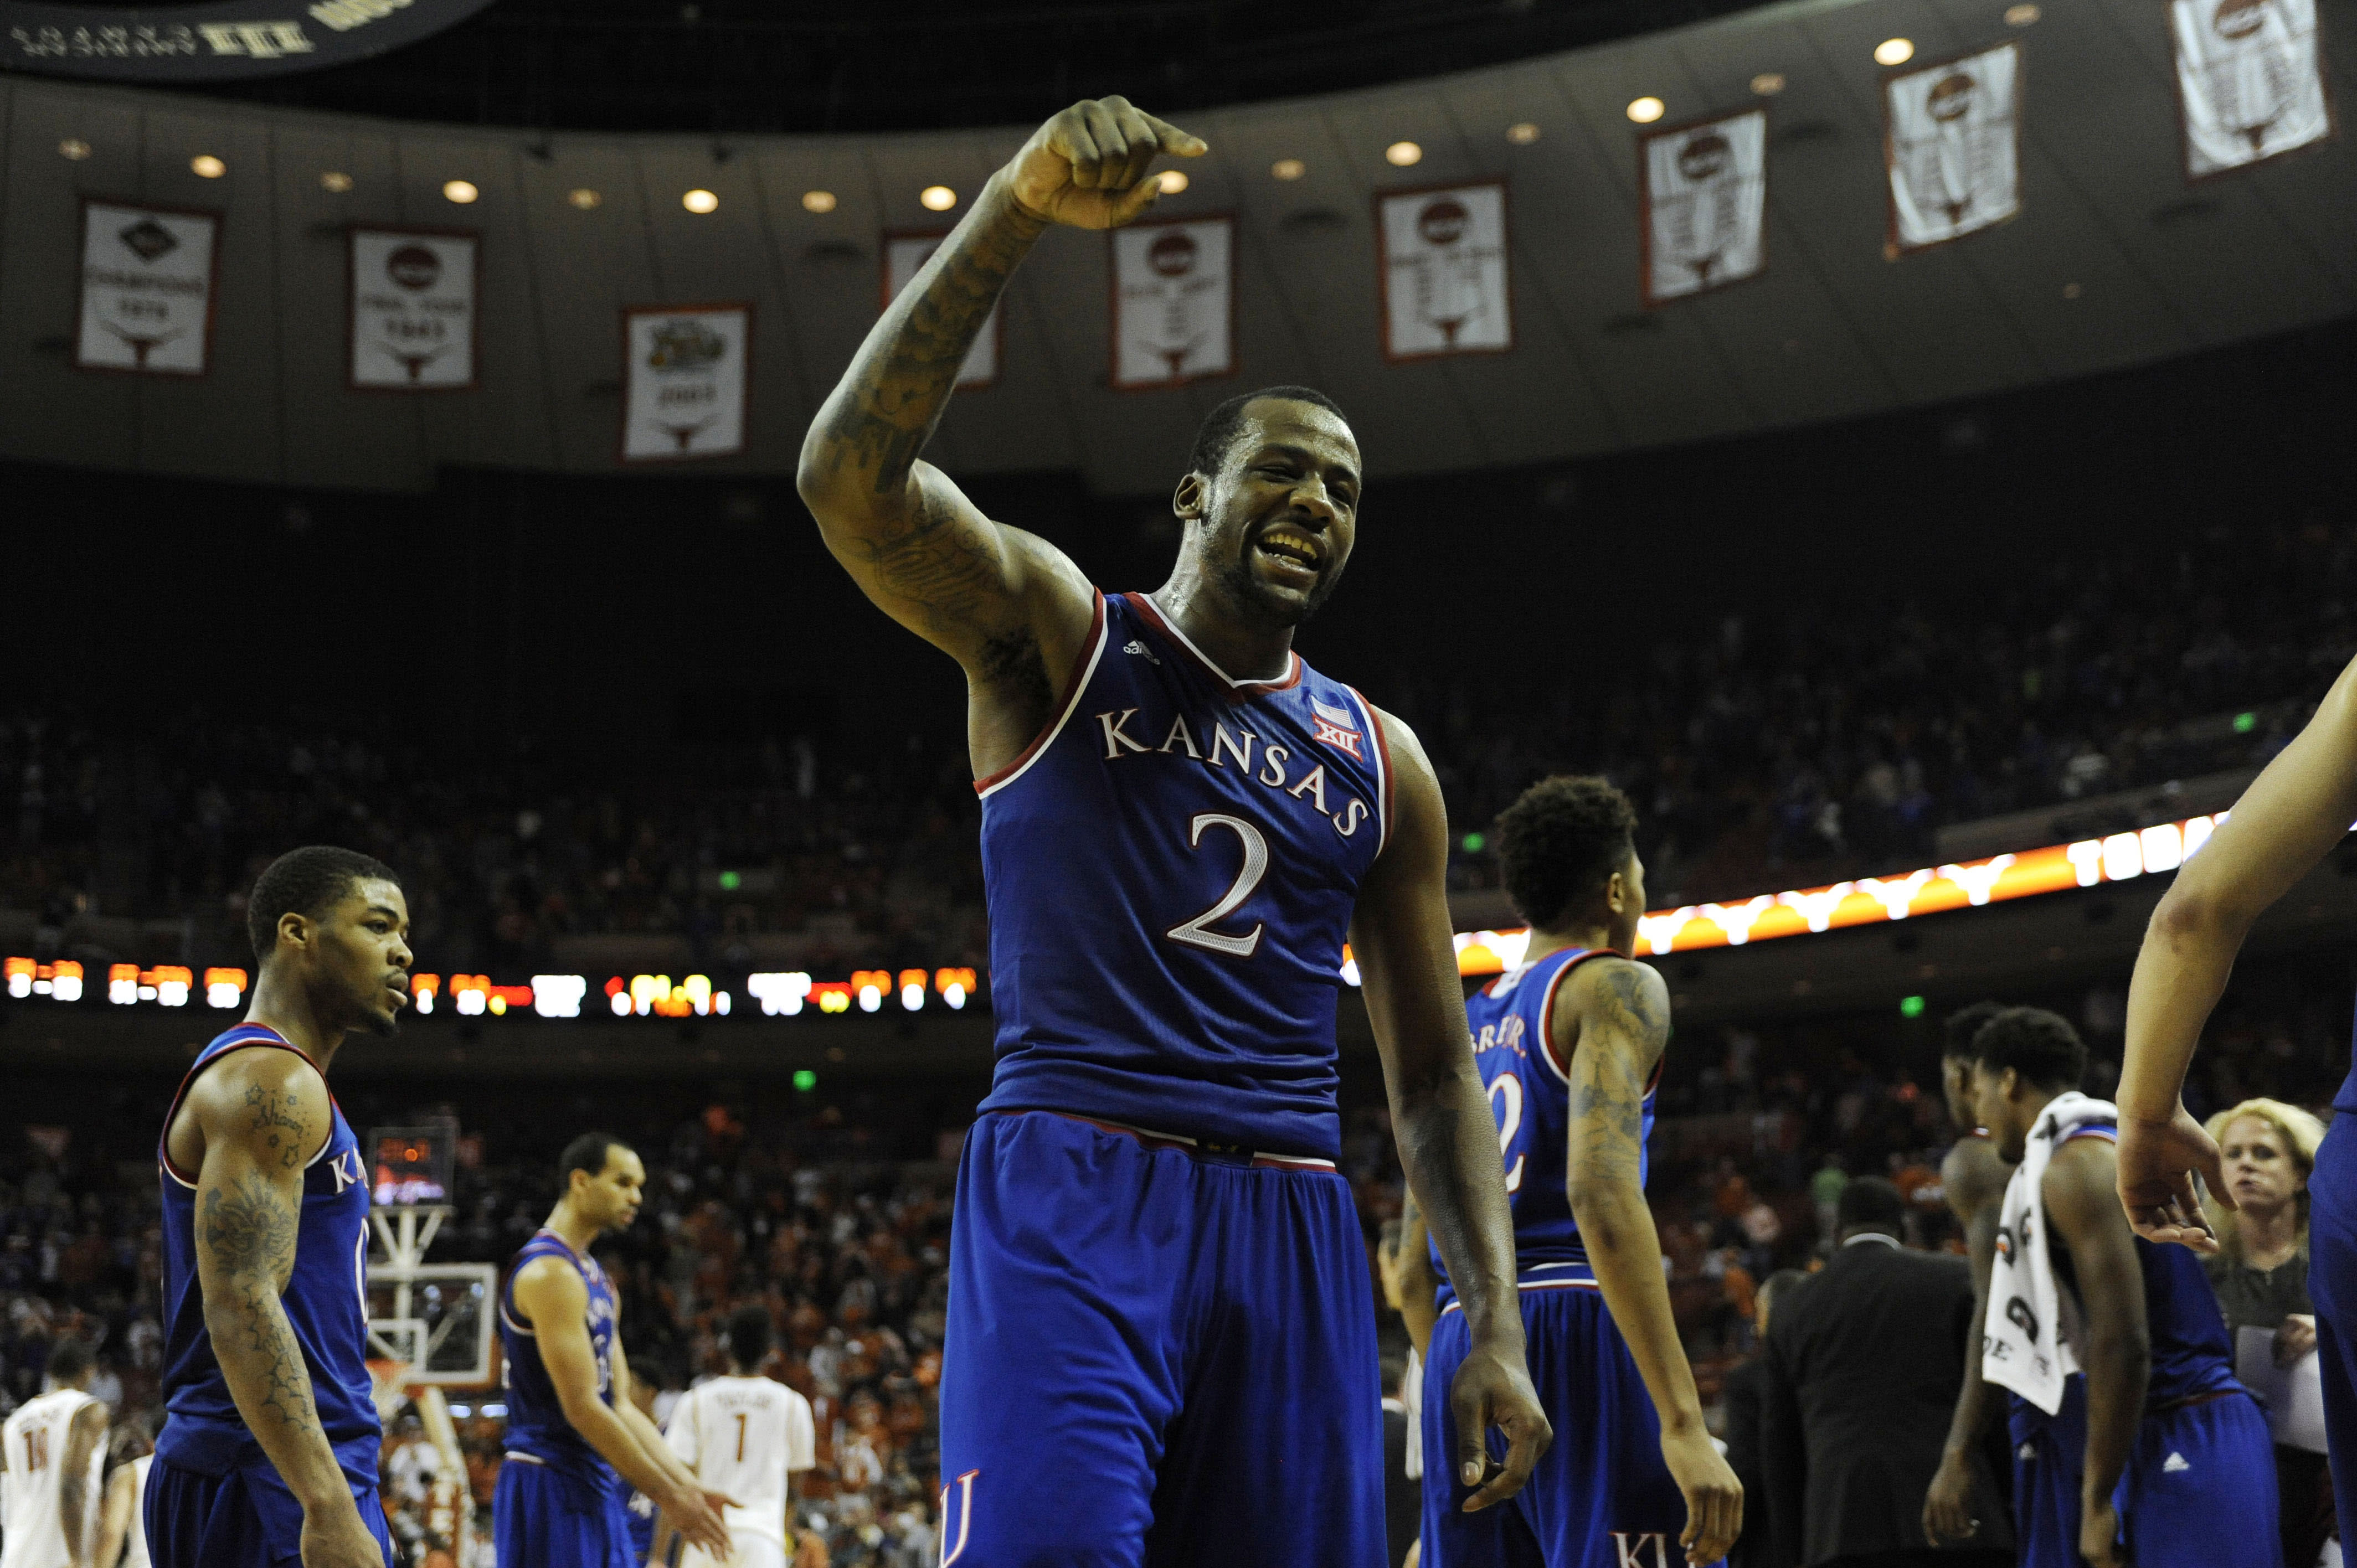 Kansas wins at Texas to tighten its grip on the Big 12